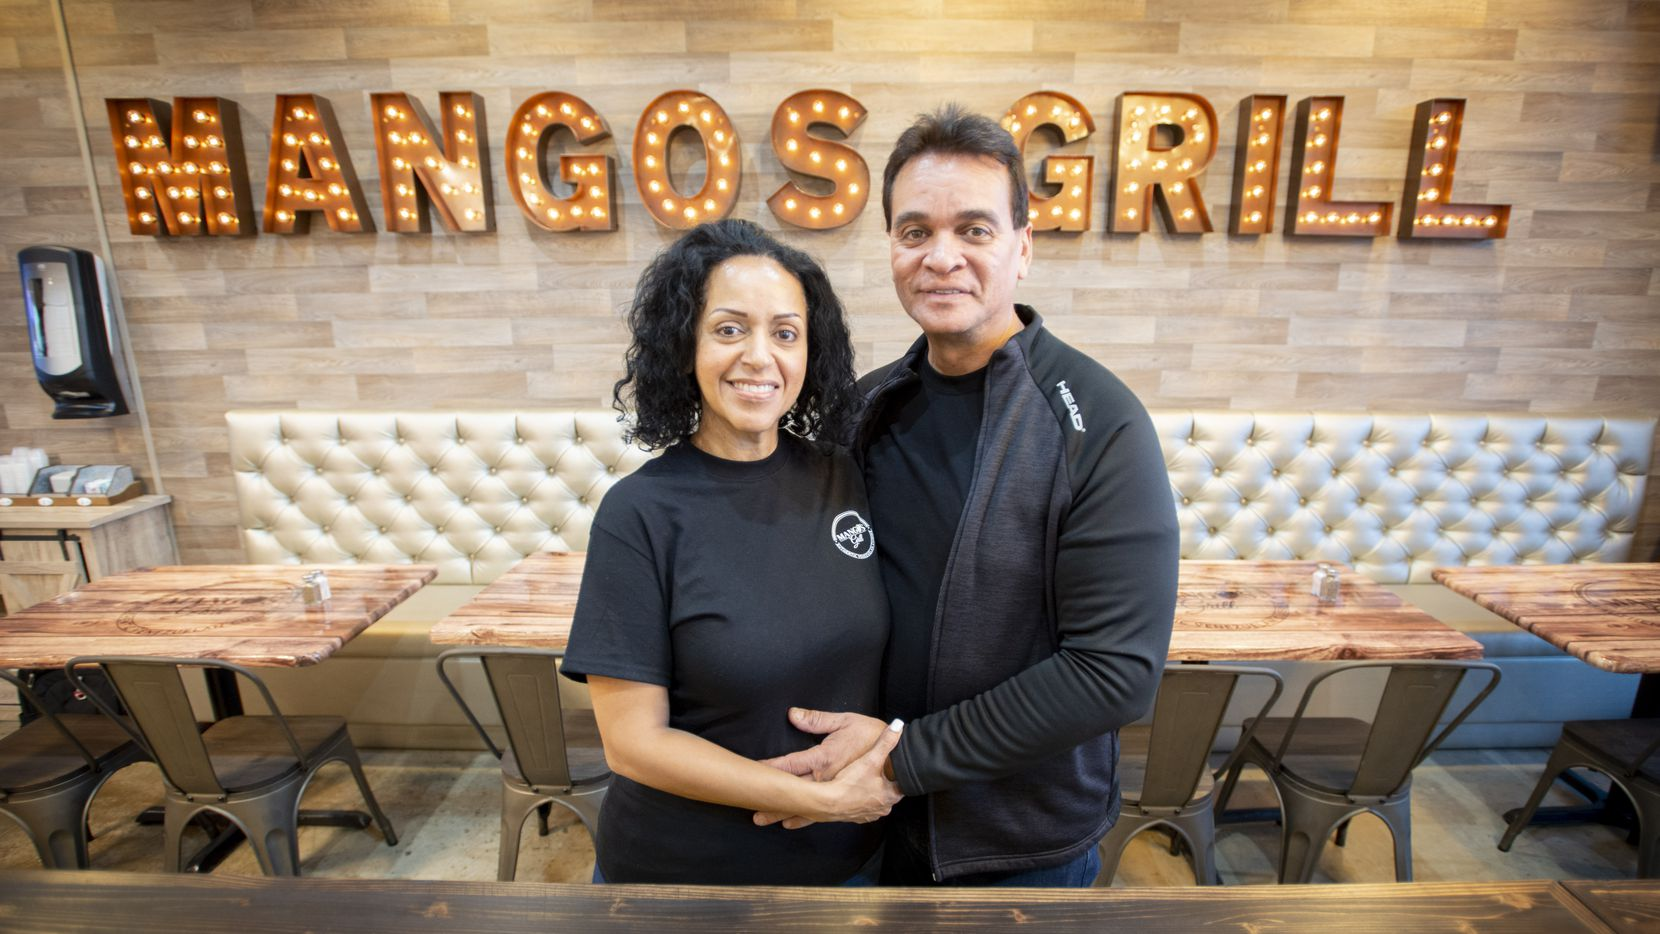 Husband and wife co-owners Karina and Edwin Castellano opened Venezuelan restaurant Mango's Grill in Haltom City on Dec. 7, 2019.